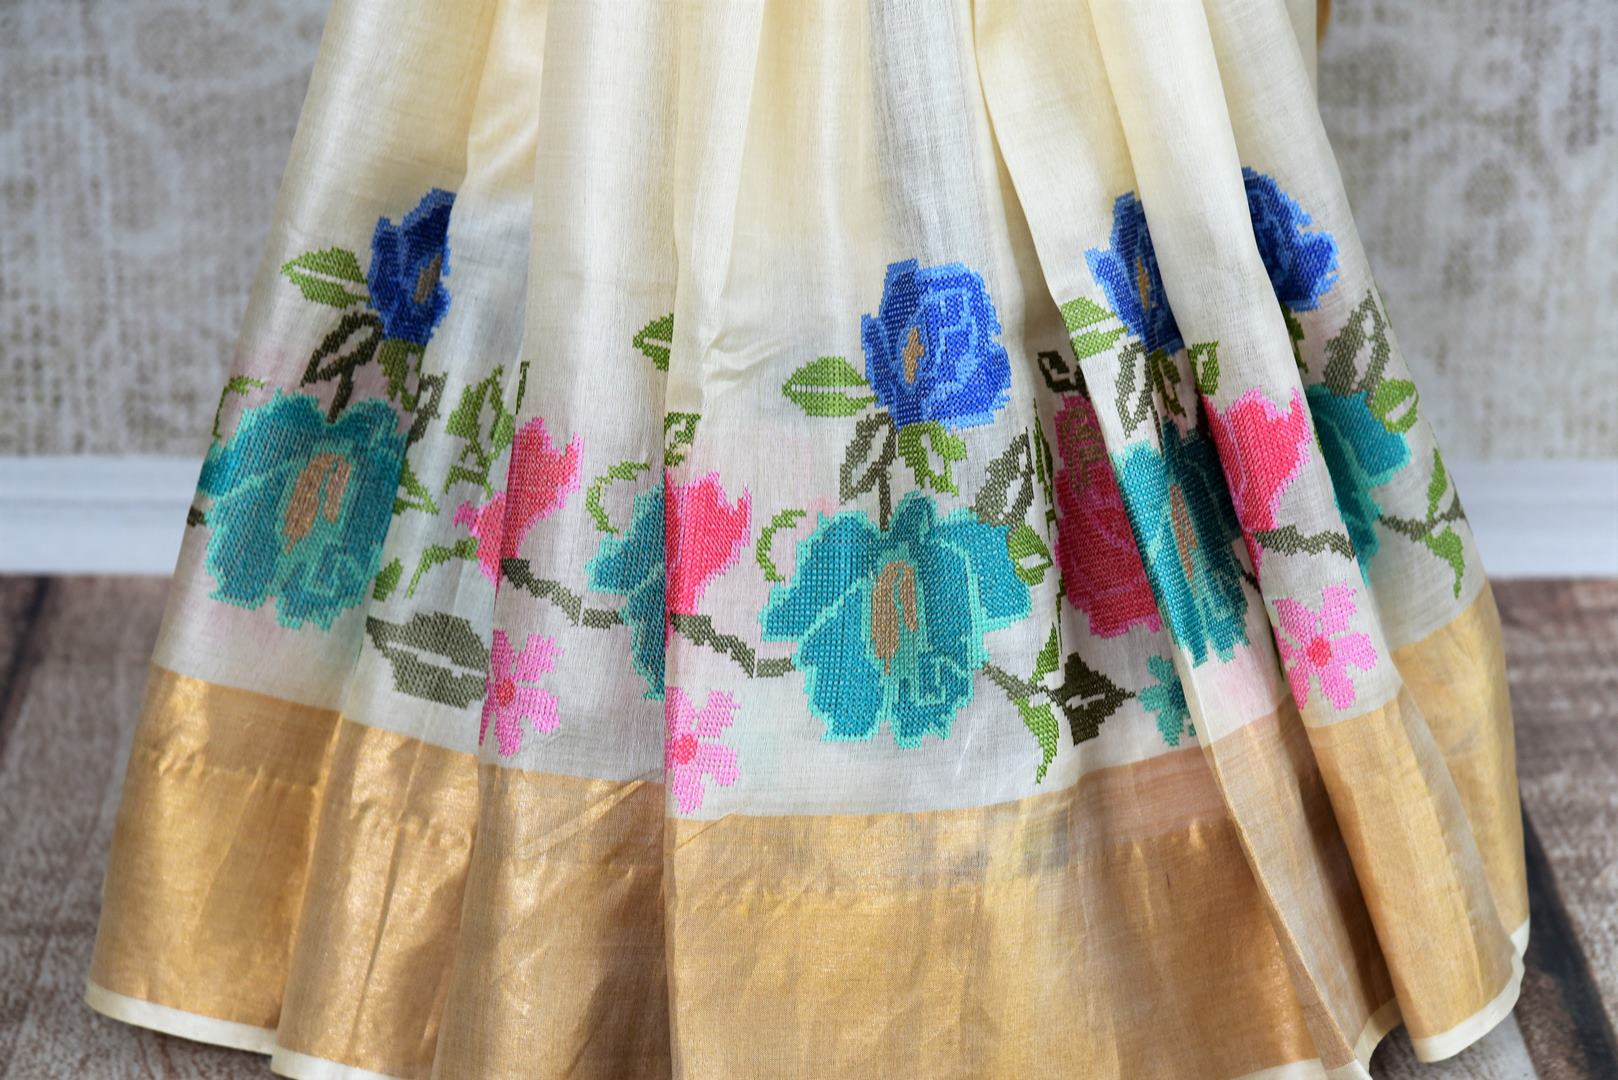 Buy elegant off white tussar saree online in USA with cross stitch embroidery. The saree is an alluring drape for parties and special occasions. For Indian women in USA, Pure Elegance brings a range of stunning Indian handloom sarees online and at their exclusive fashion store in USA.-pleats